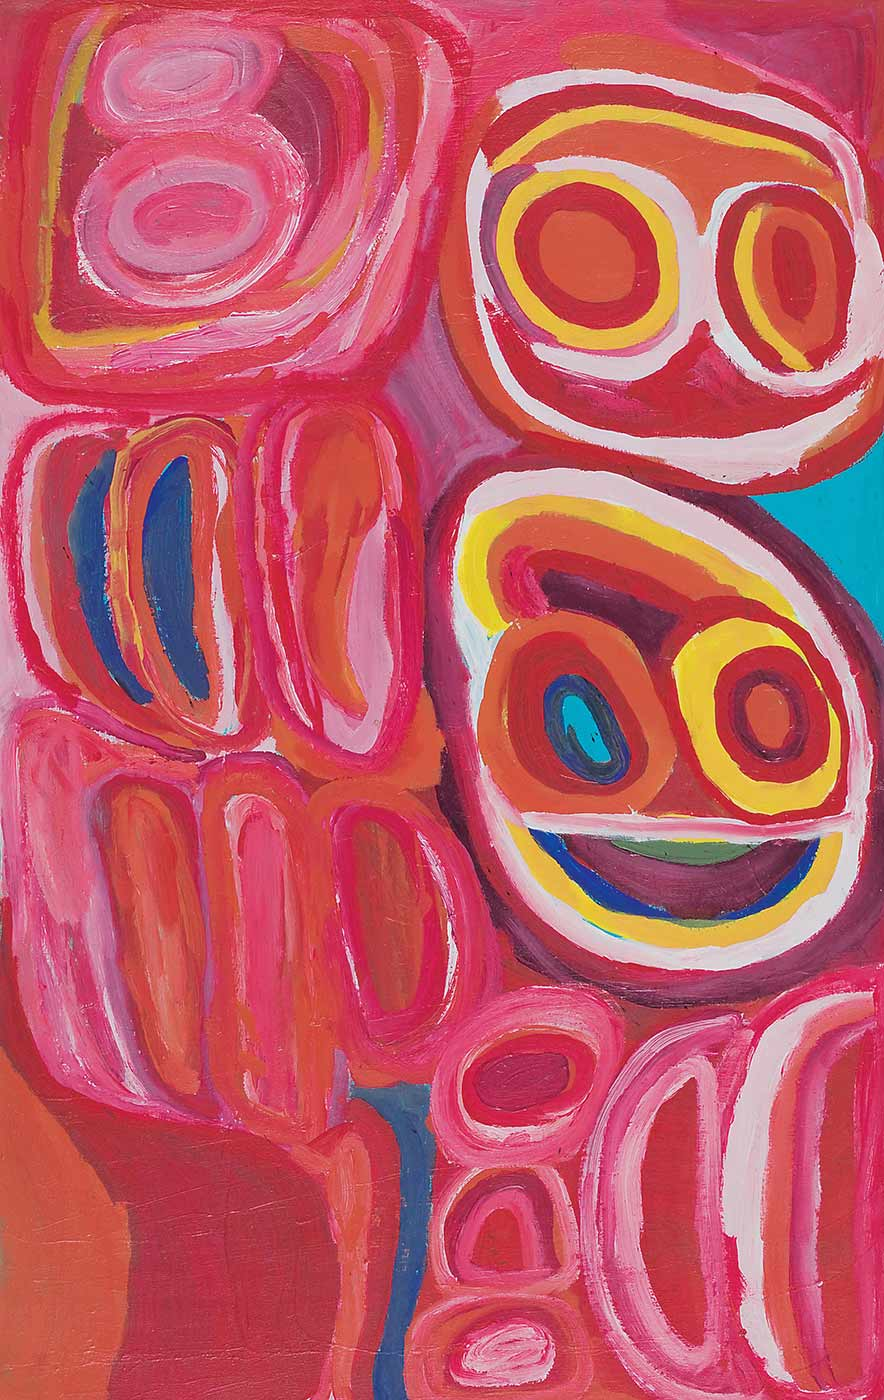 A dark pink toned painting on canvas with a face like motif in green, yellow, orange, purple, pink and blue to the right side. Above this there is a circle with two concentric circles within it side by side, in pink, red, and yellow. The left side and lower section of the painting is filled with pink, red, purple and blue concentric shapes with an orange squarish shape in the bottom left corner.